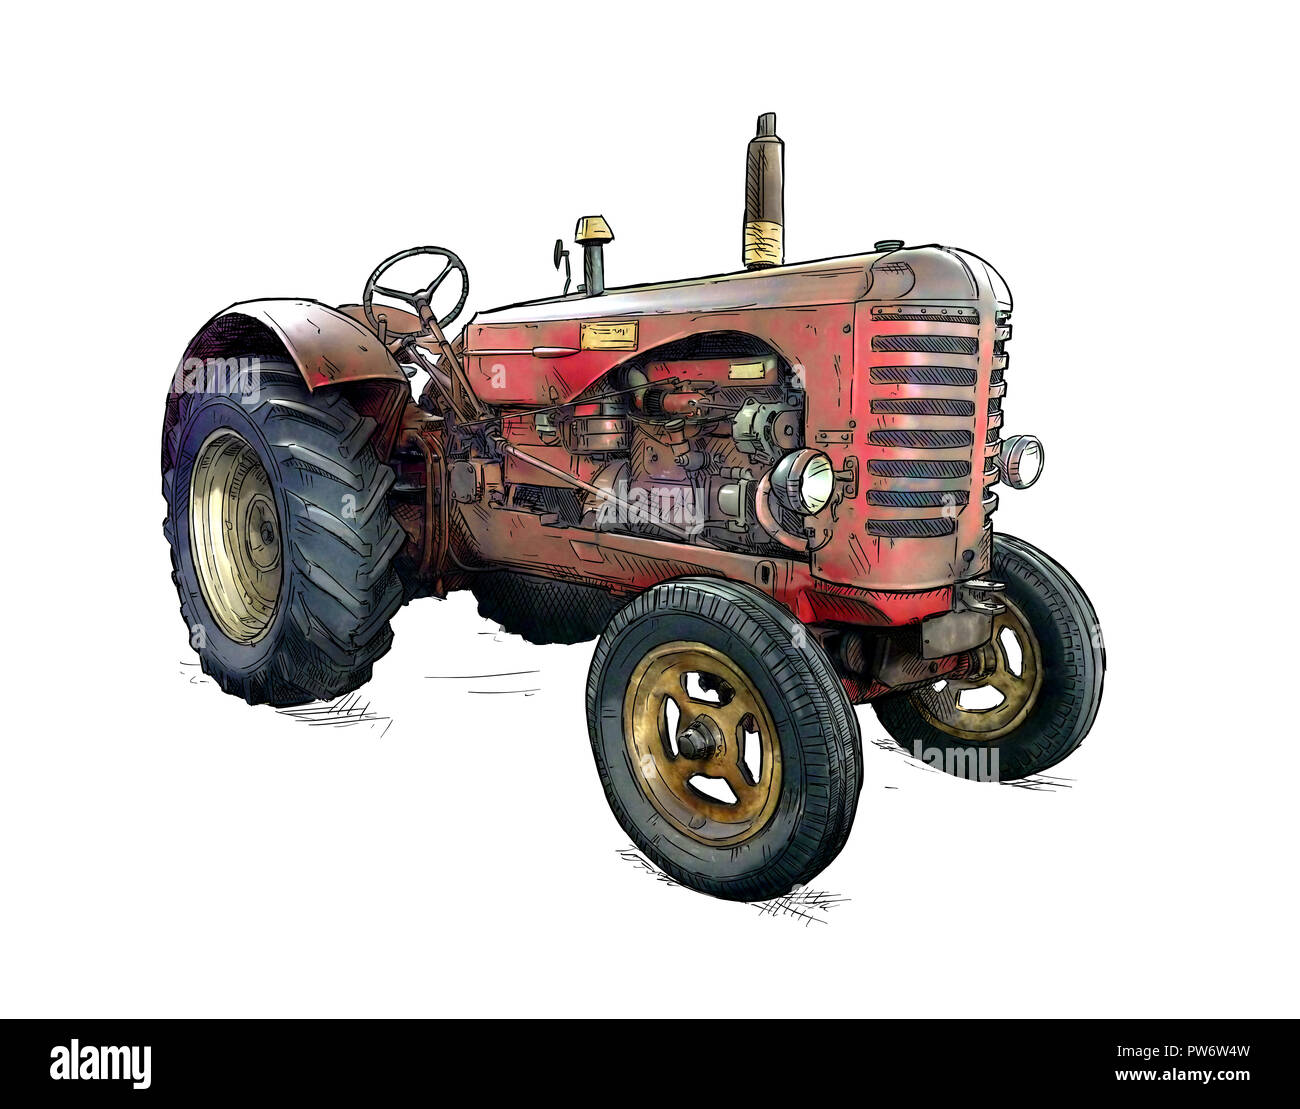 Cartoon or Comic Style Illustration of Old Red Tractor - Stock Image